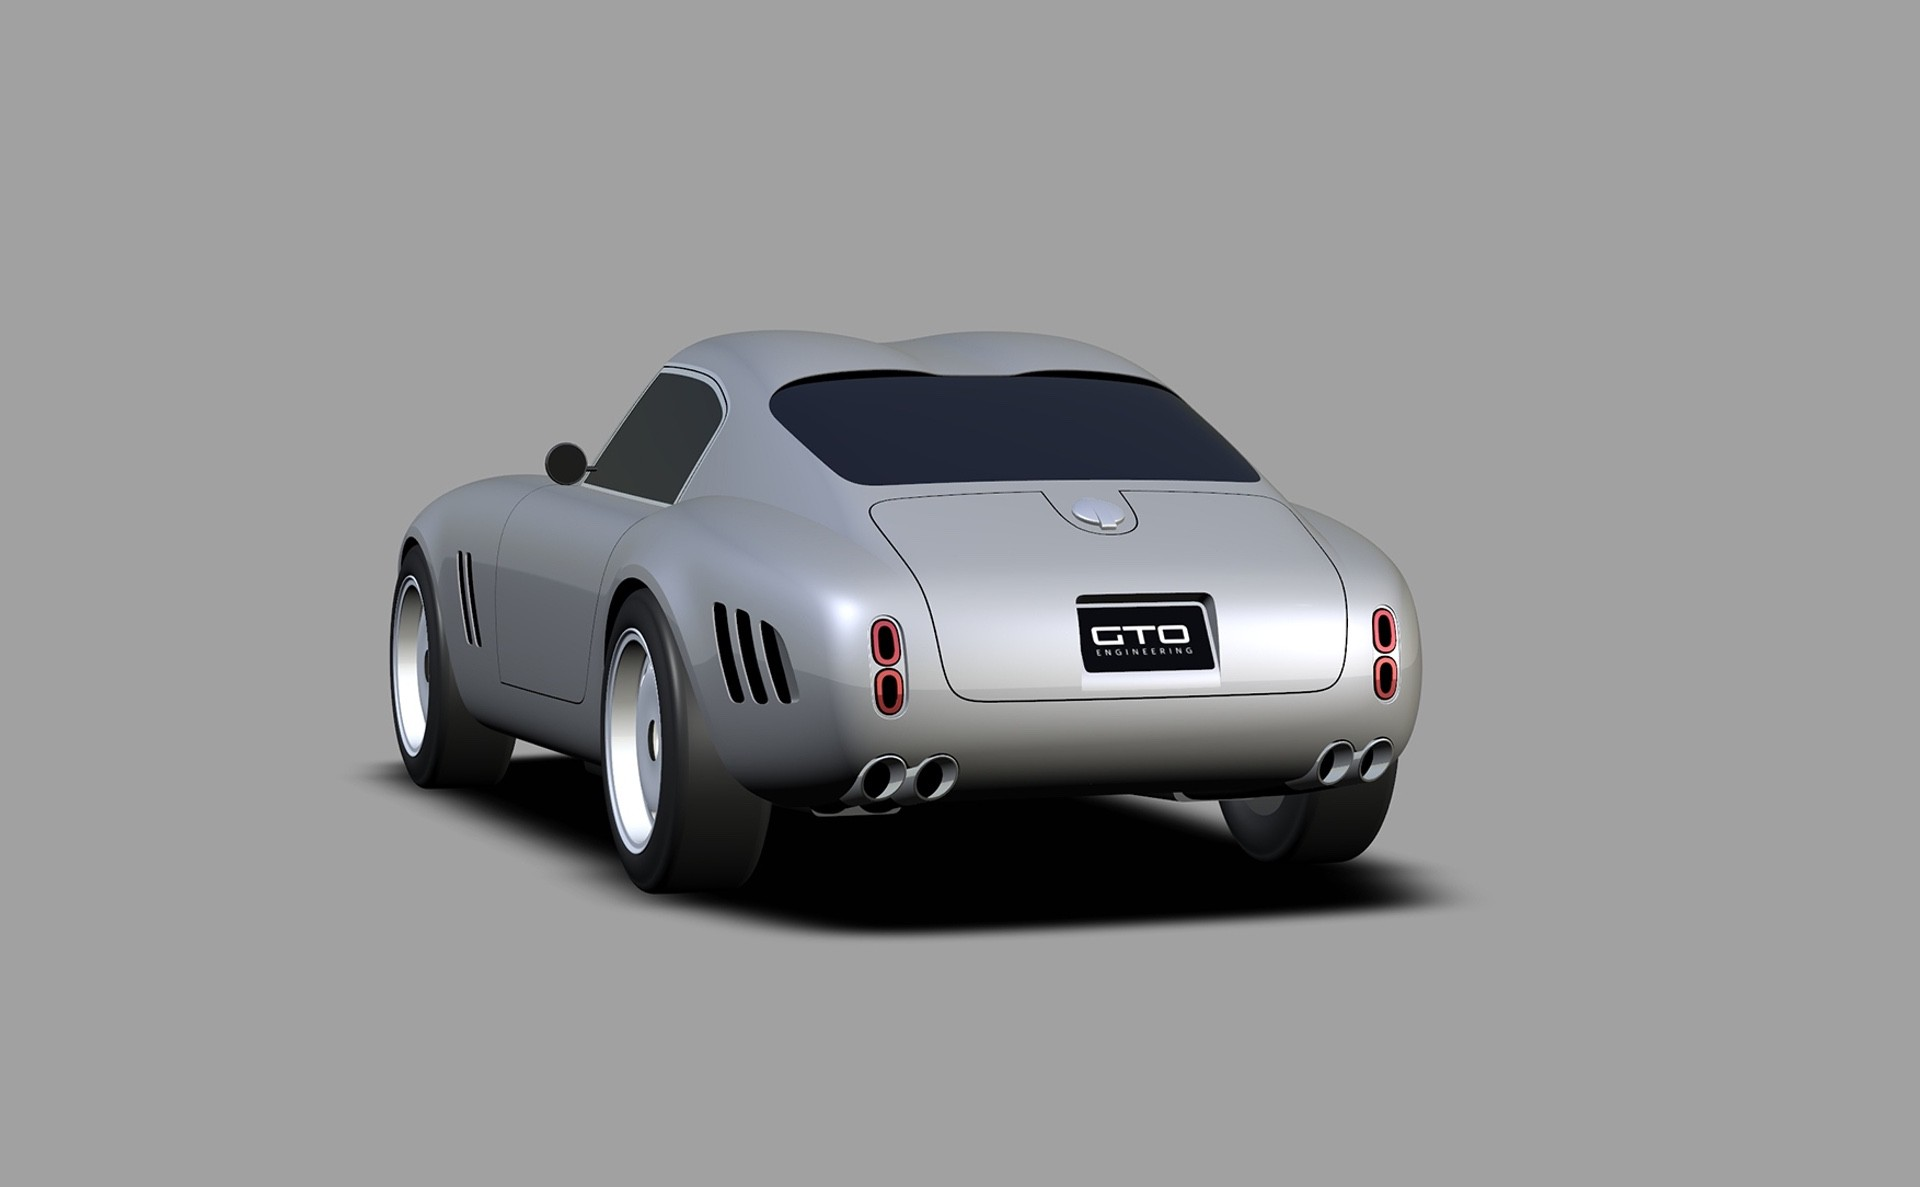 8.-Project-Moderna-underway-with-key-engine-and-design-updates-revealed-by-GTO-Engineering